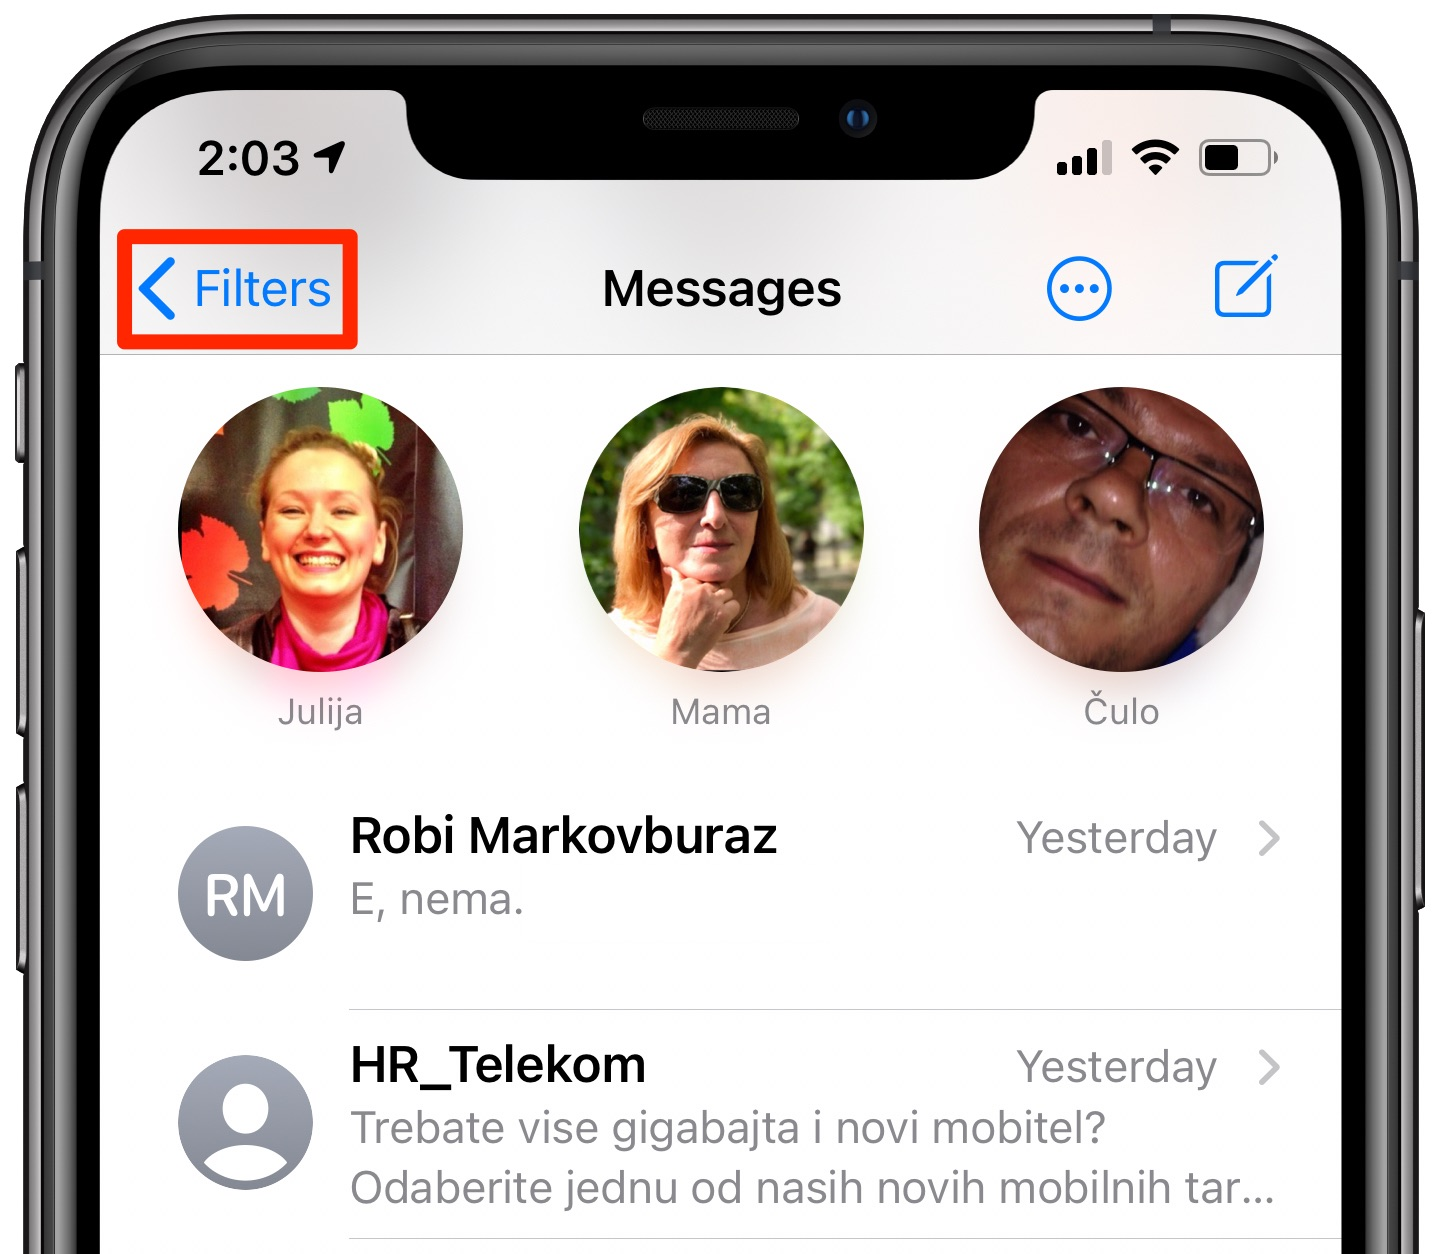 iOS 14 Messages filtering - the Filters button